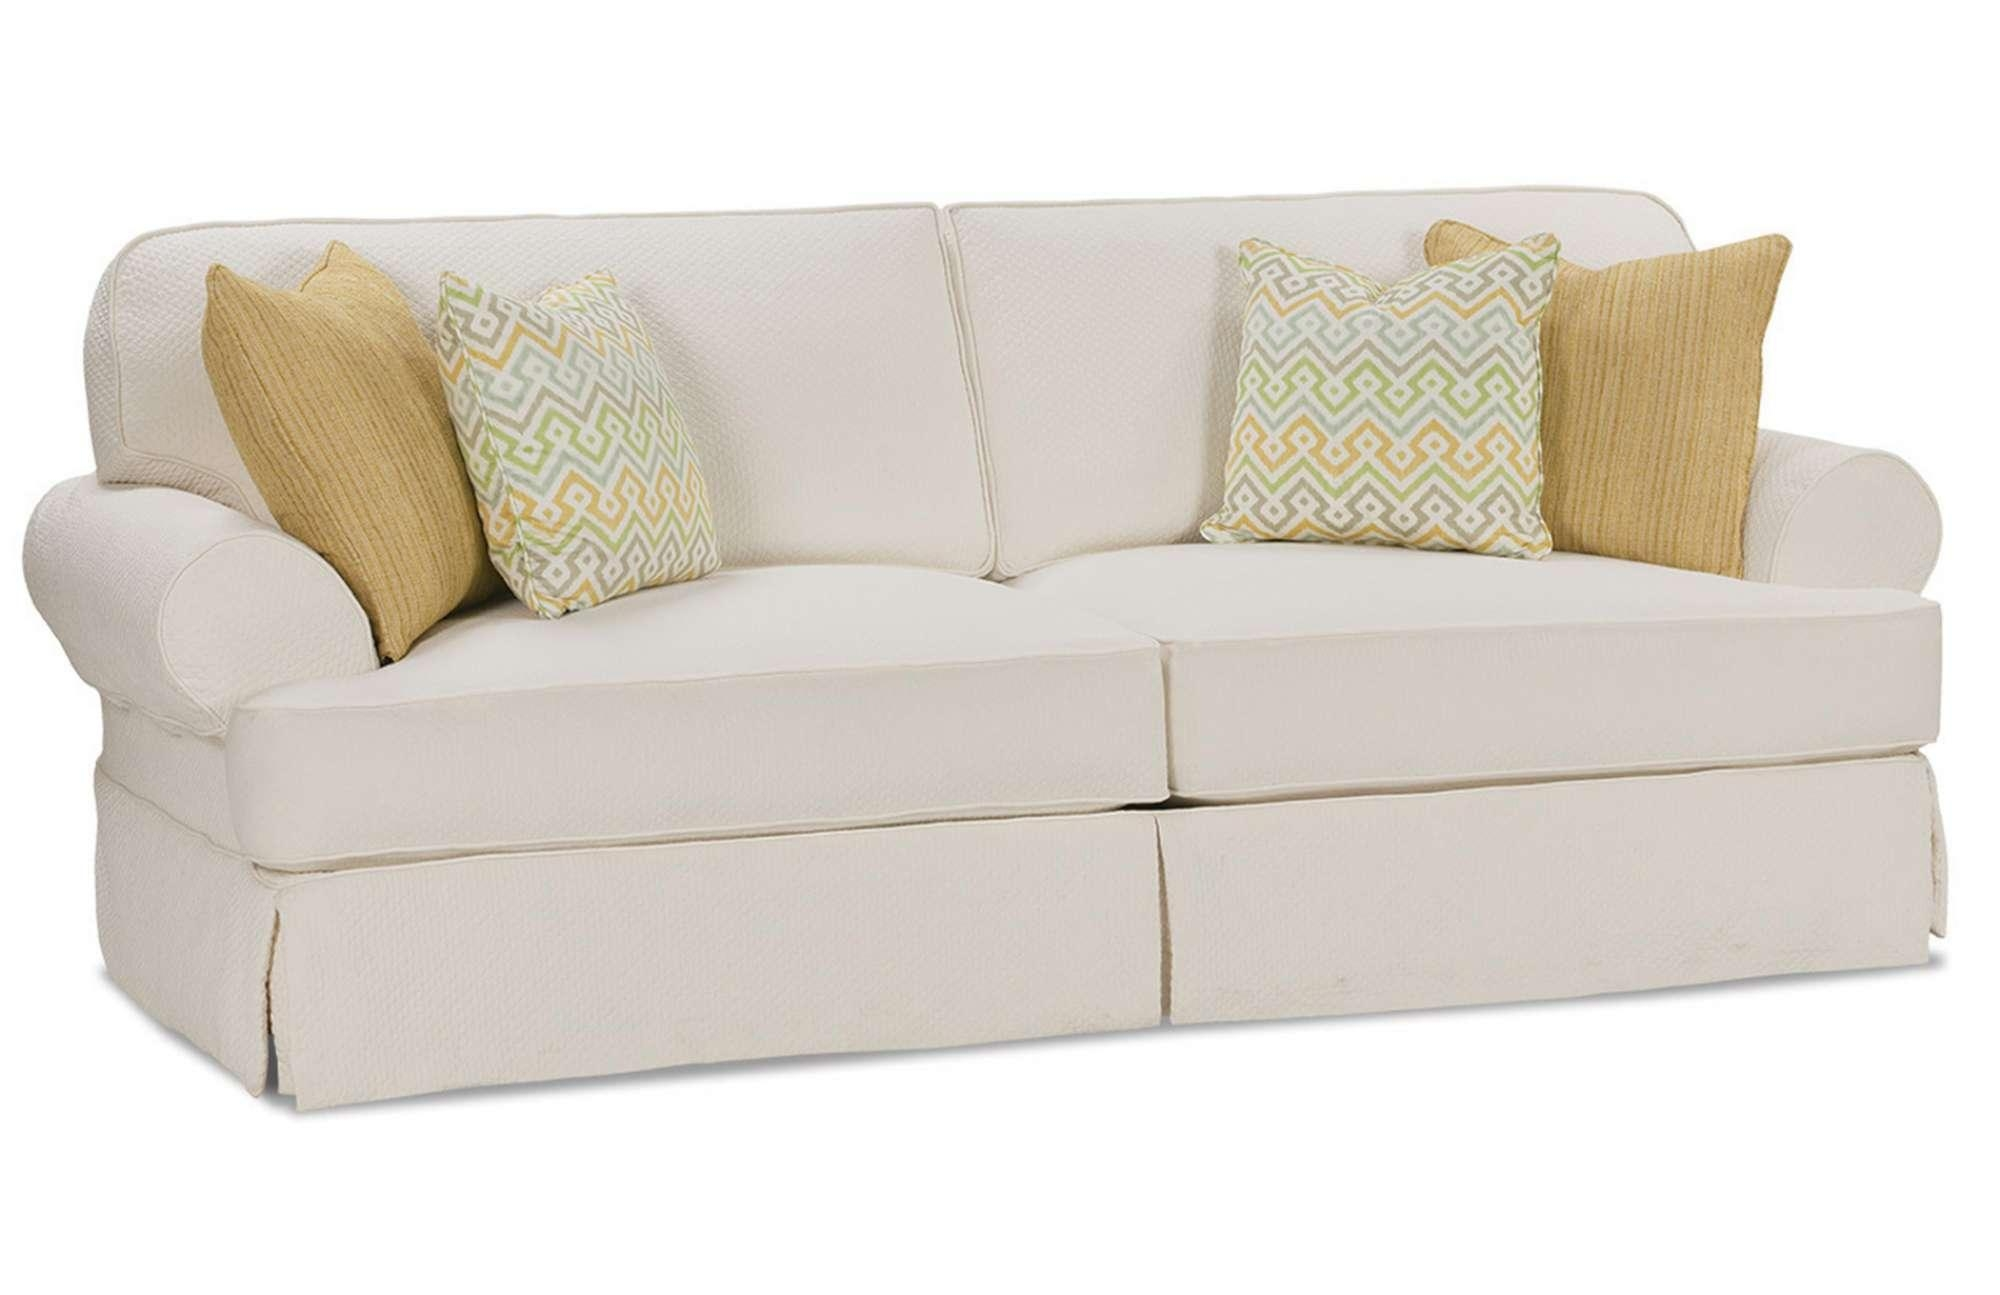 Furniture & Rug: Charming Rowe Furniture Slipcovers For Best For Rowe Slipcovers (Image 7 of 20)